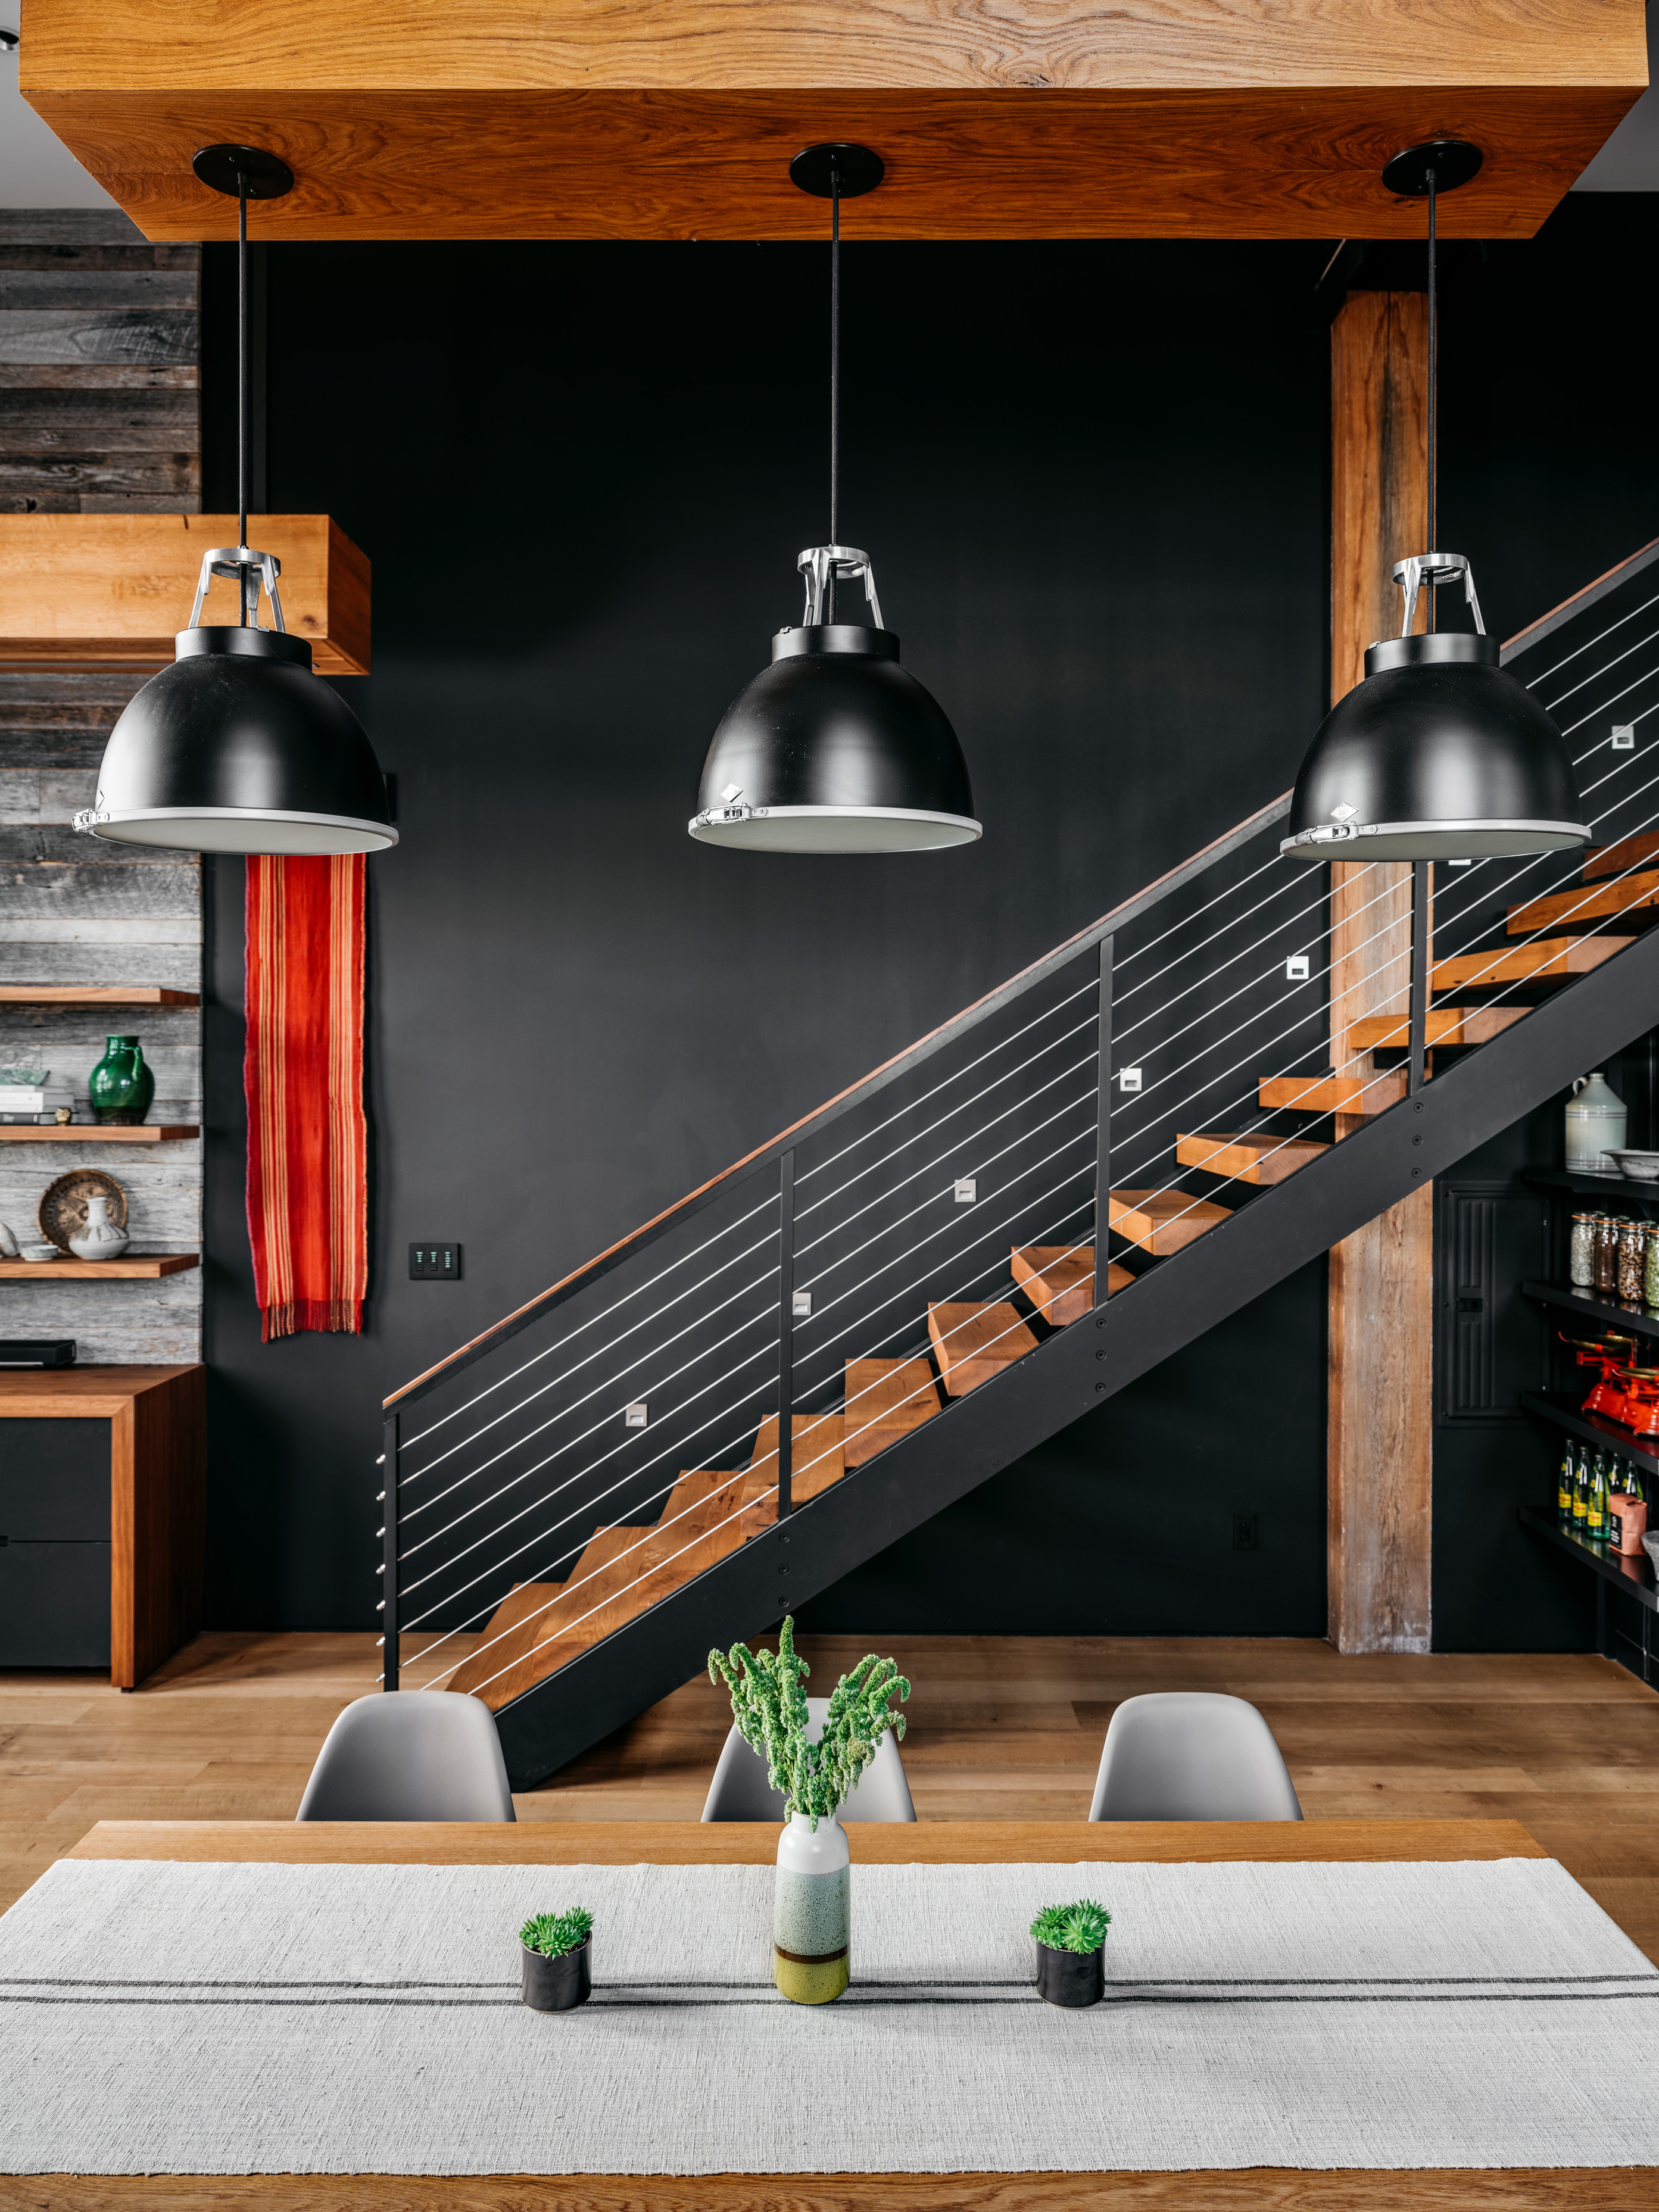 Industrial-style pendant lights are suspended over the custom dining table. The stairs in the background were custom designed by Murdock.